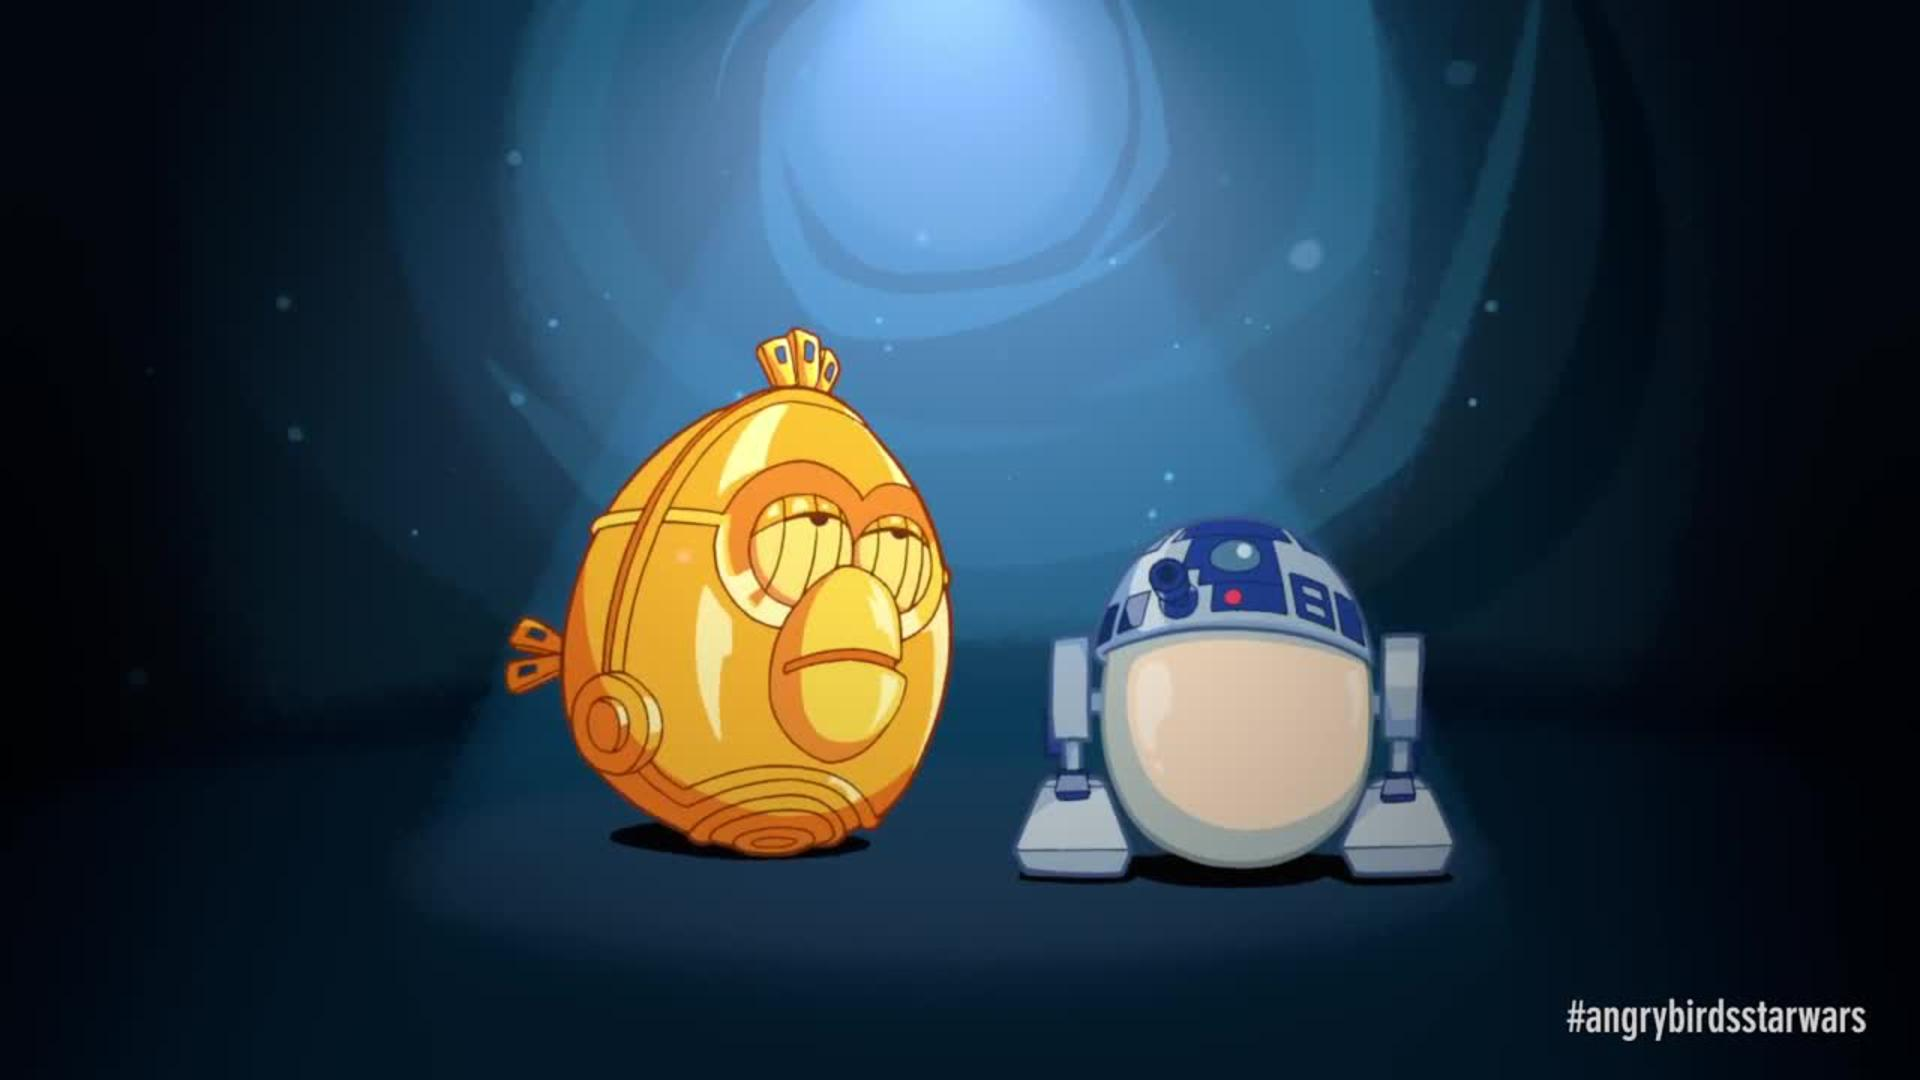 Angry birds star wars wallpaper 8 - Angry birds star wars 8 ...